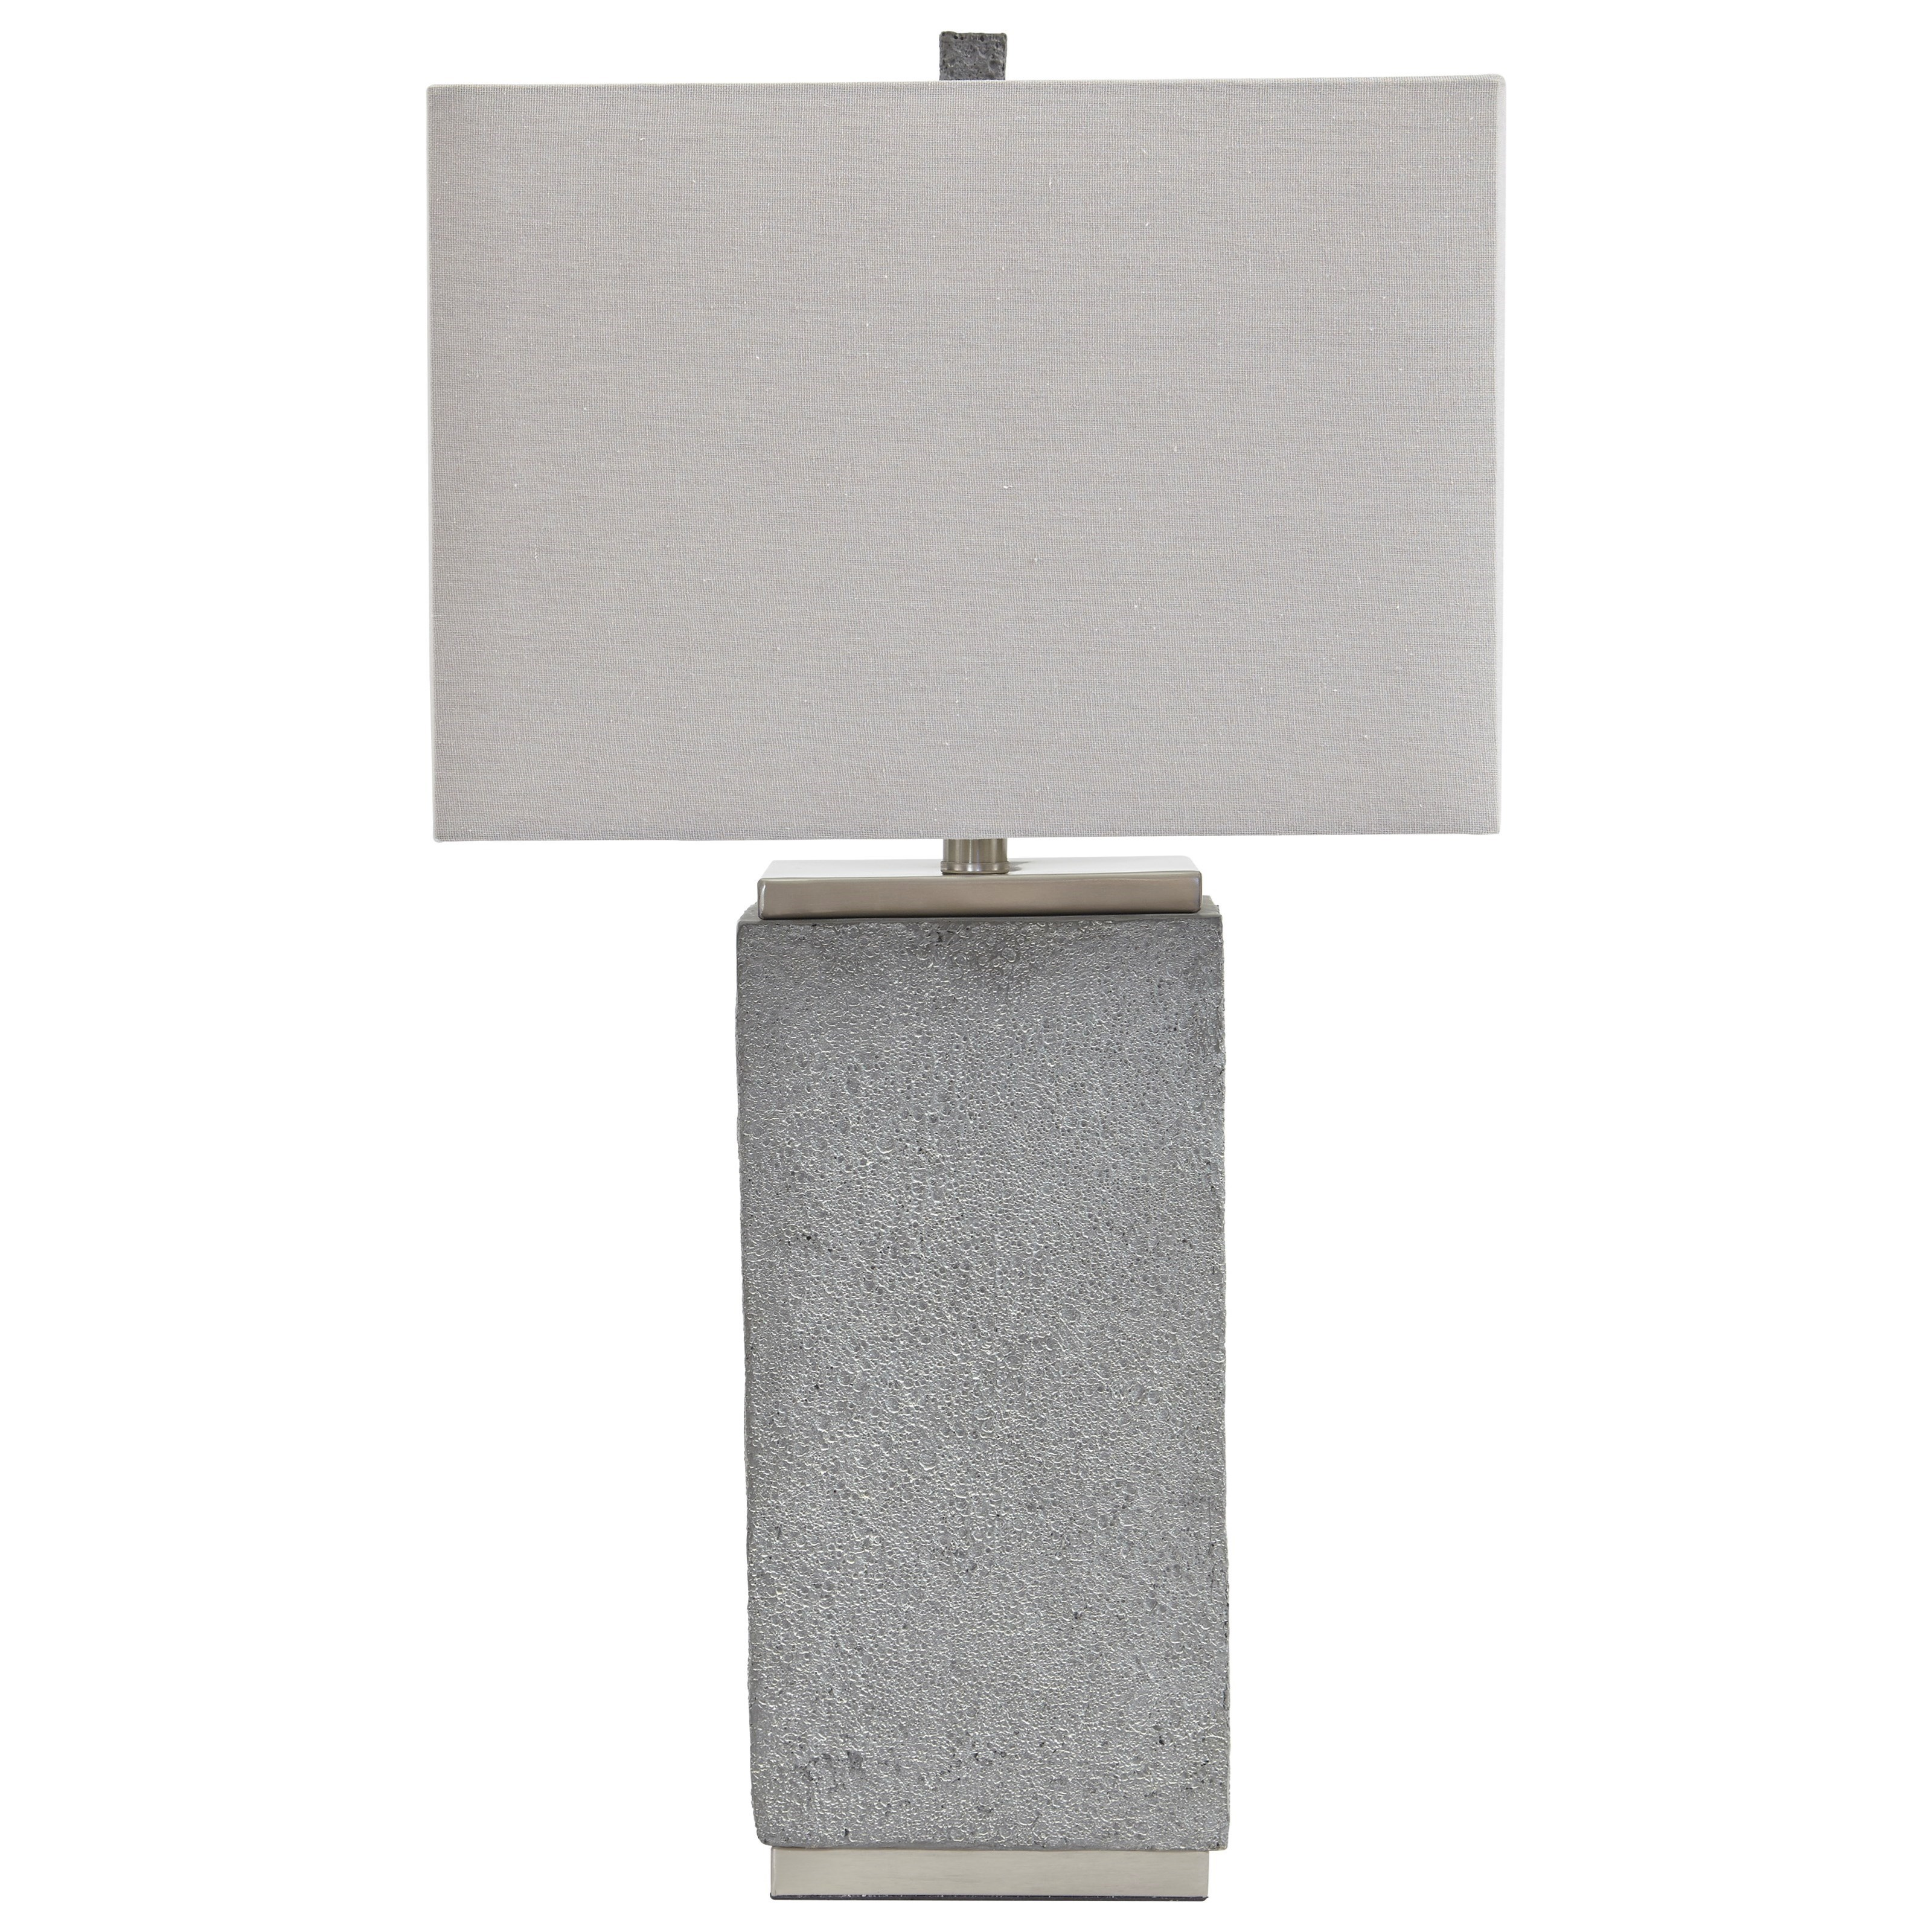 Ashley signature design lamps contemporary set of 2 amergin faux ashley signature design lamps contemporary set of 2 amergin faux concrete table lamps item geotapseo Choice Image